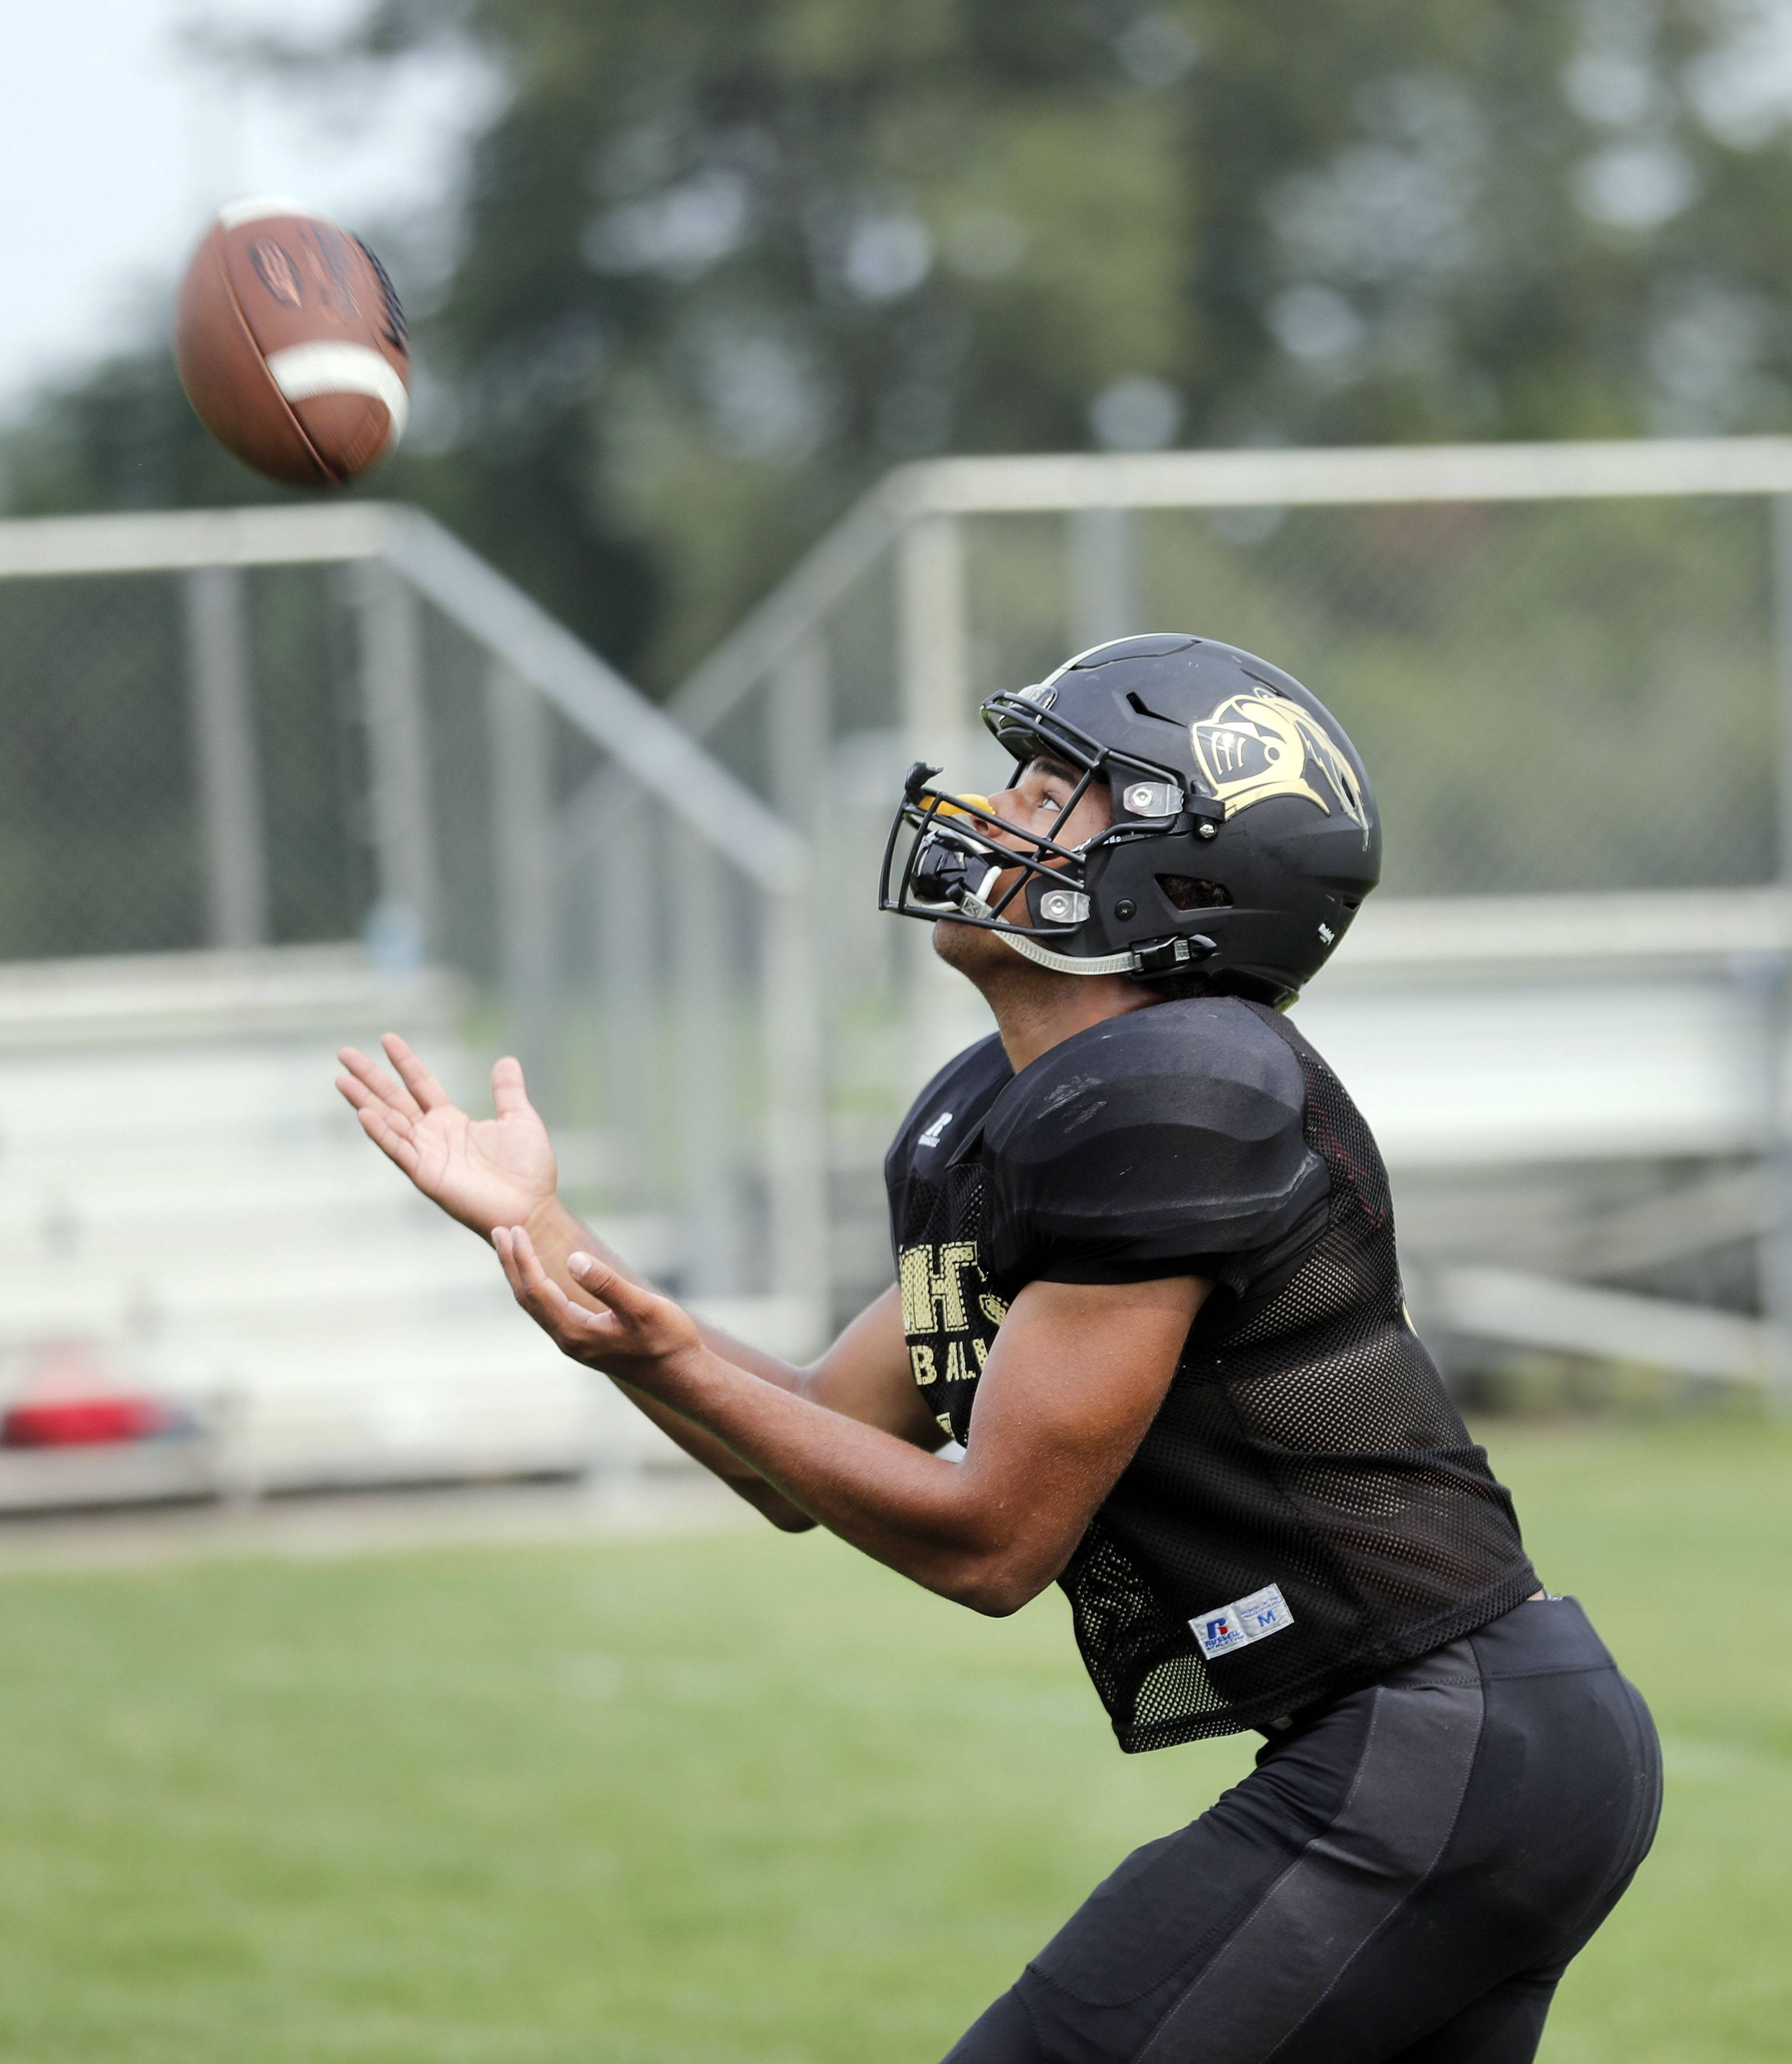 RB Jordan Curtis catches a punt during football practice at Grayslake North.